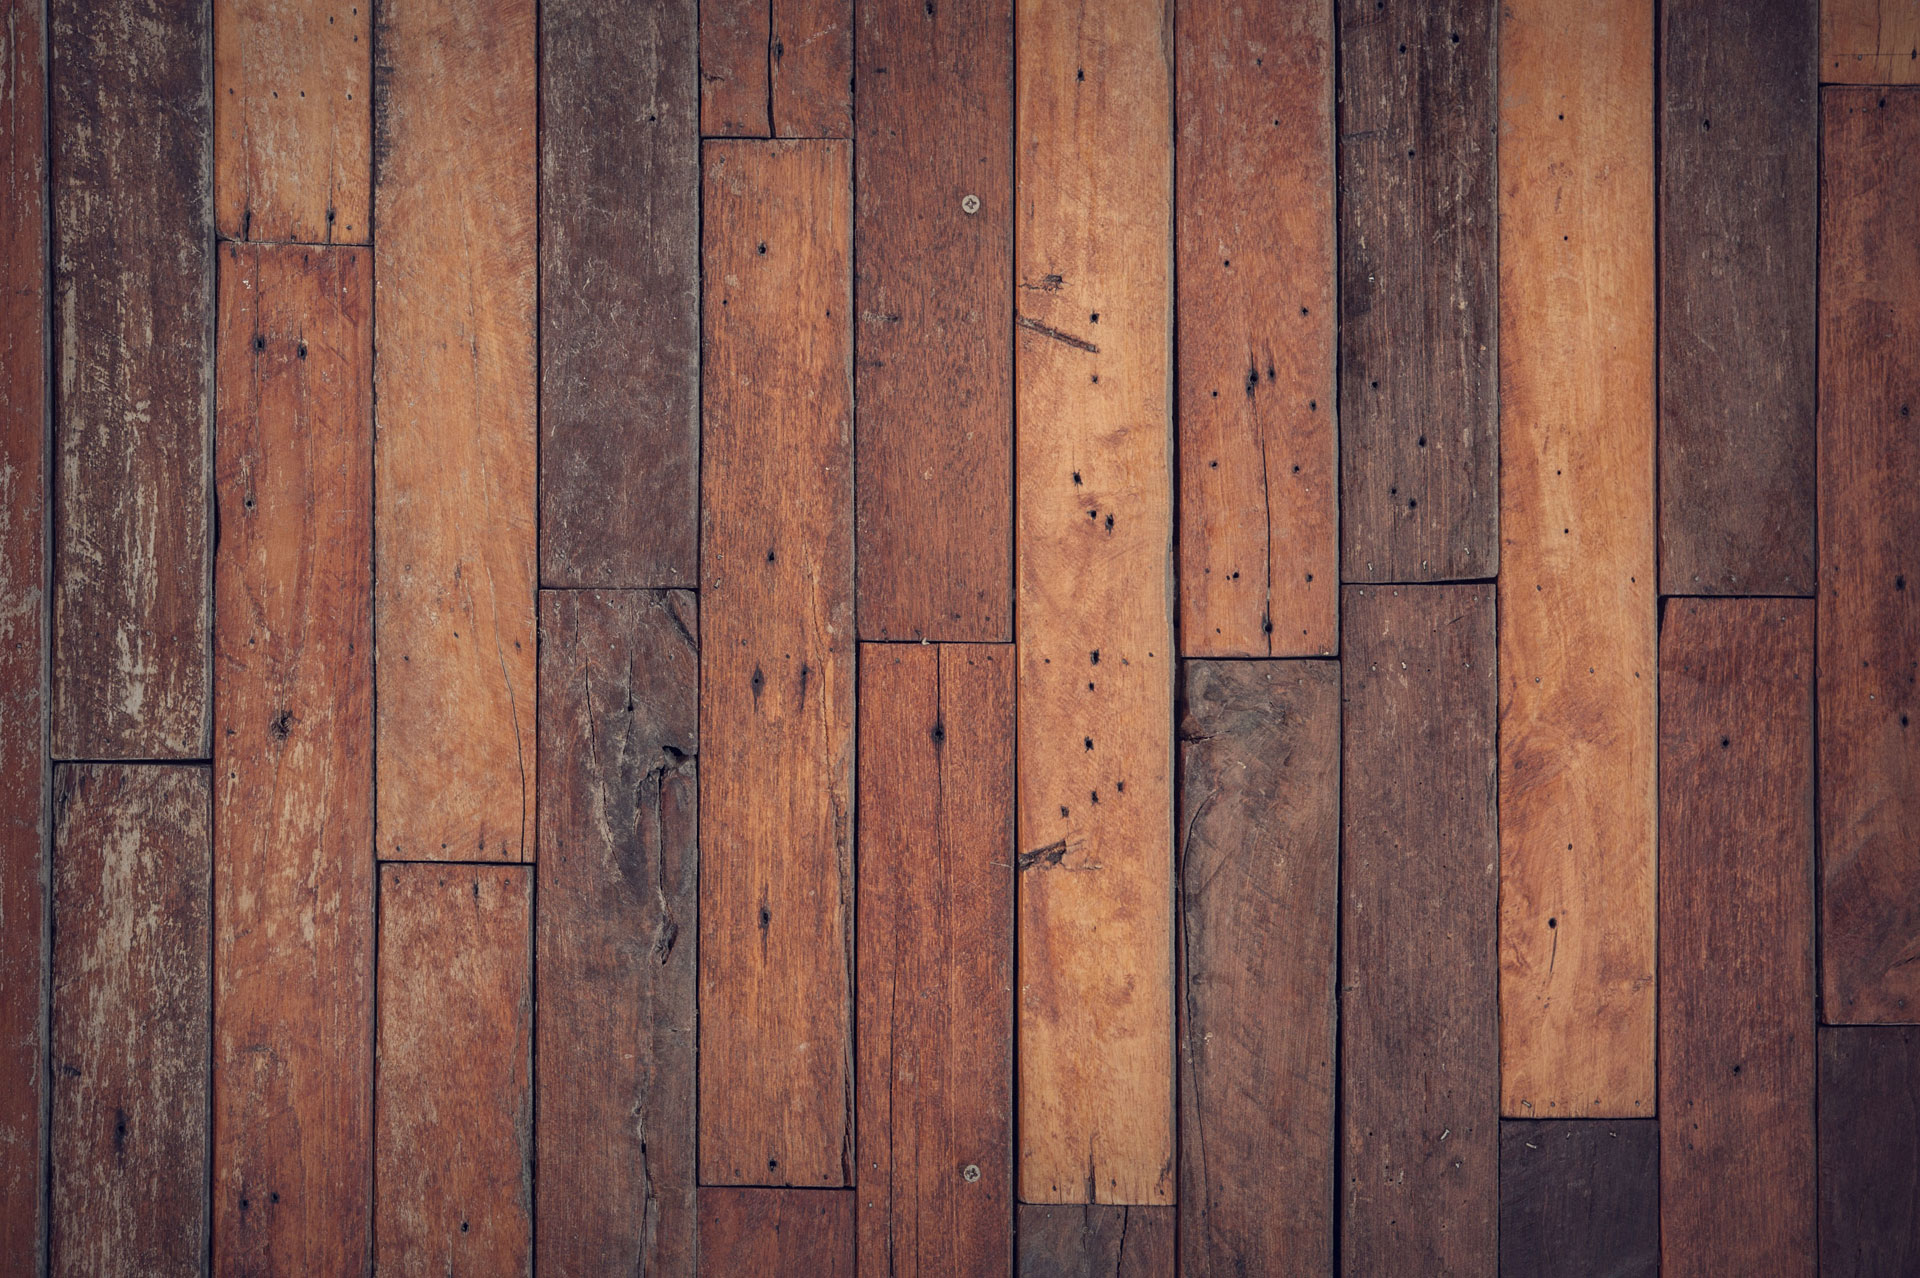 brown-wooden-floor-172292